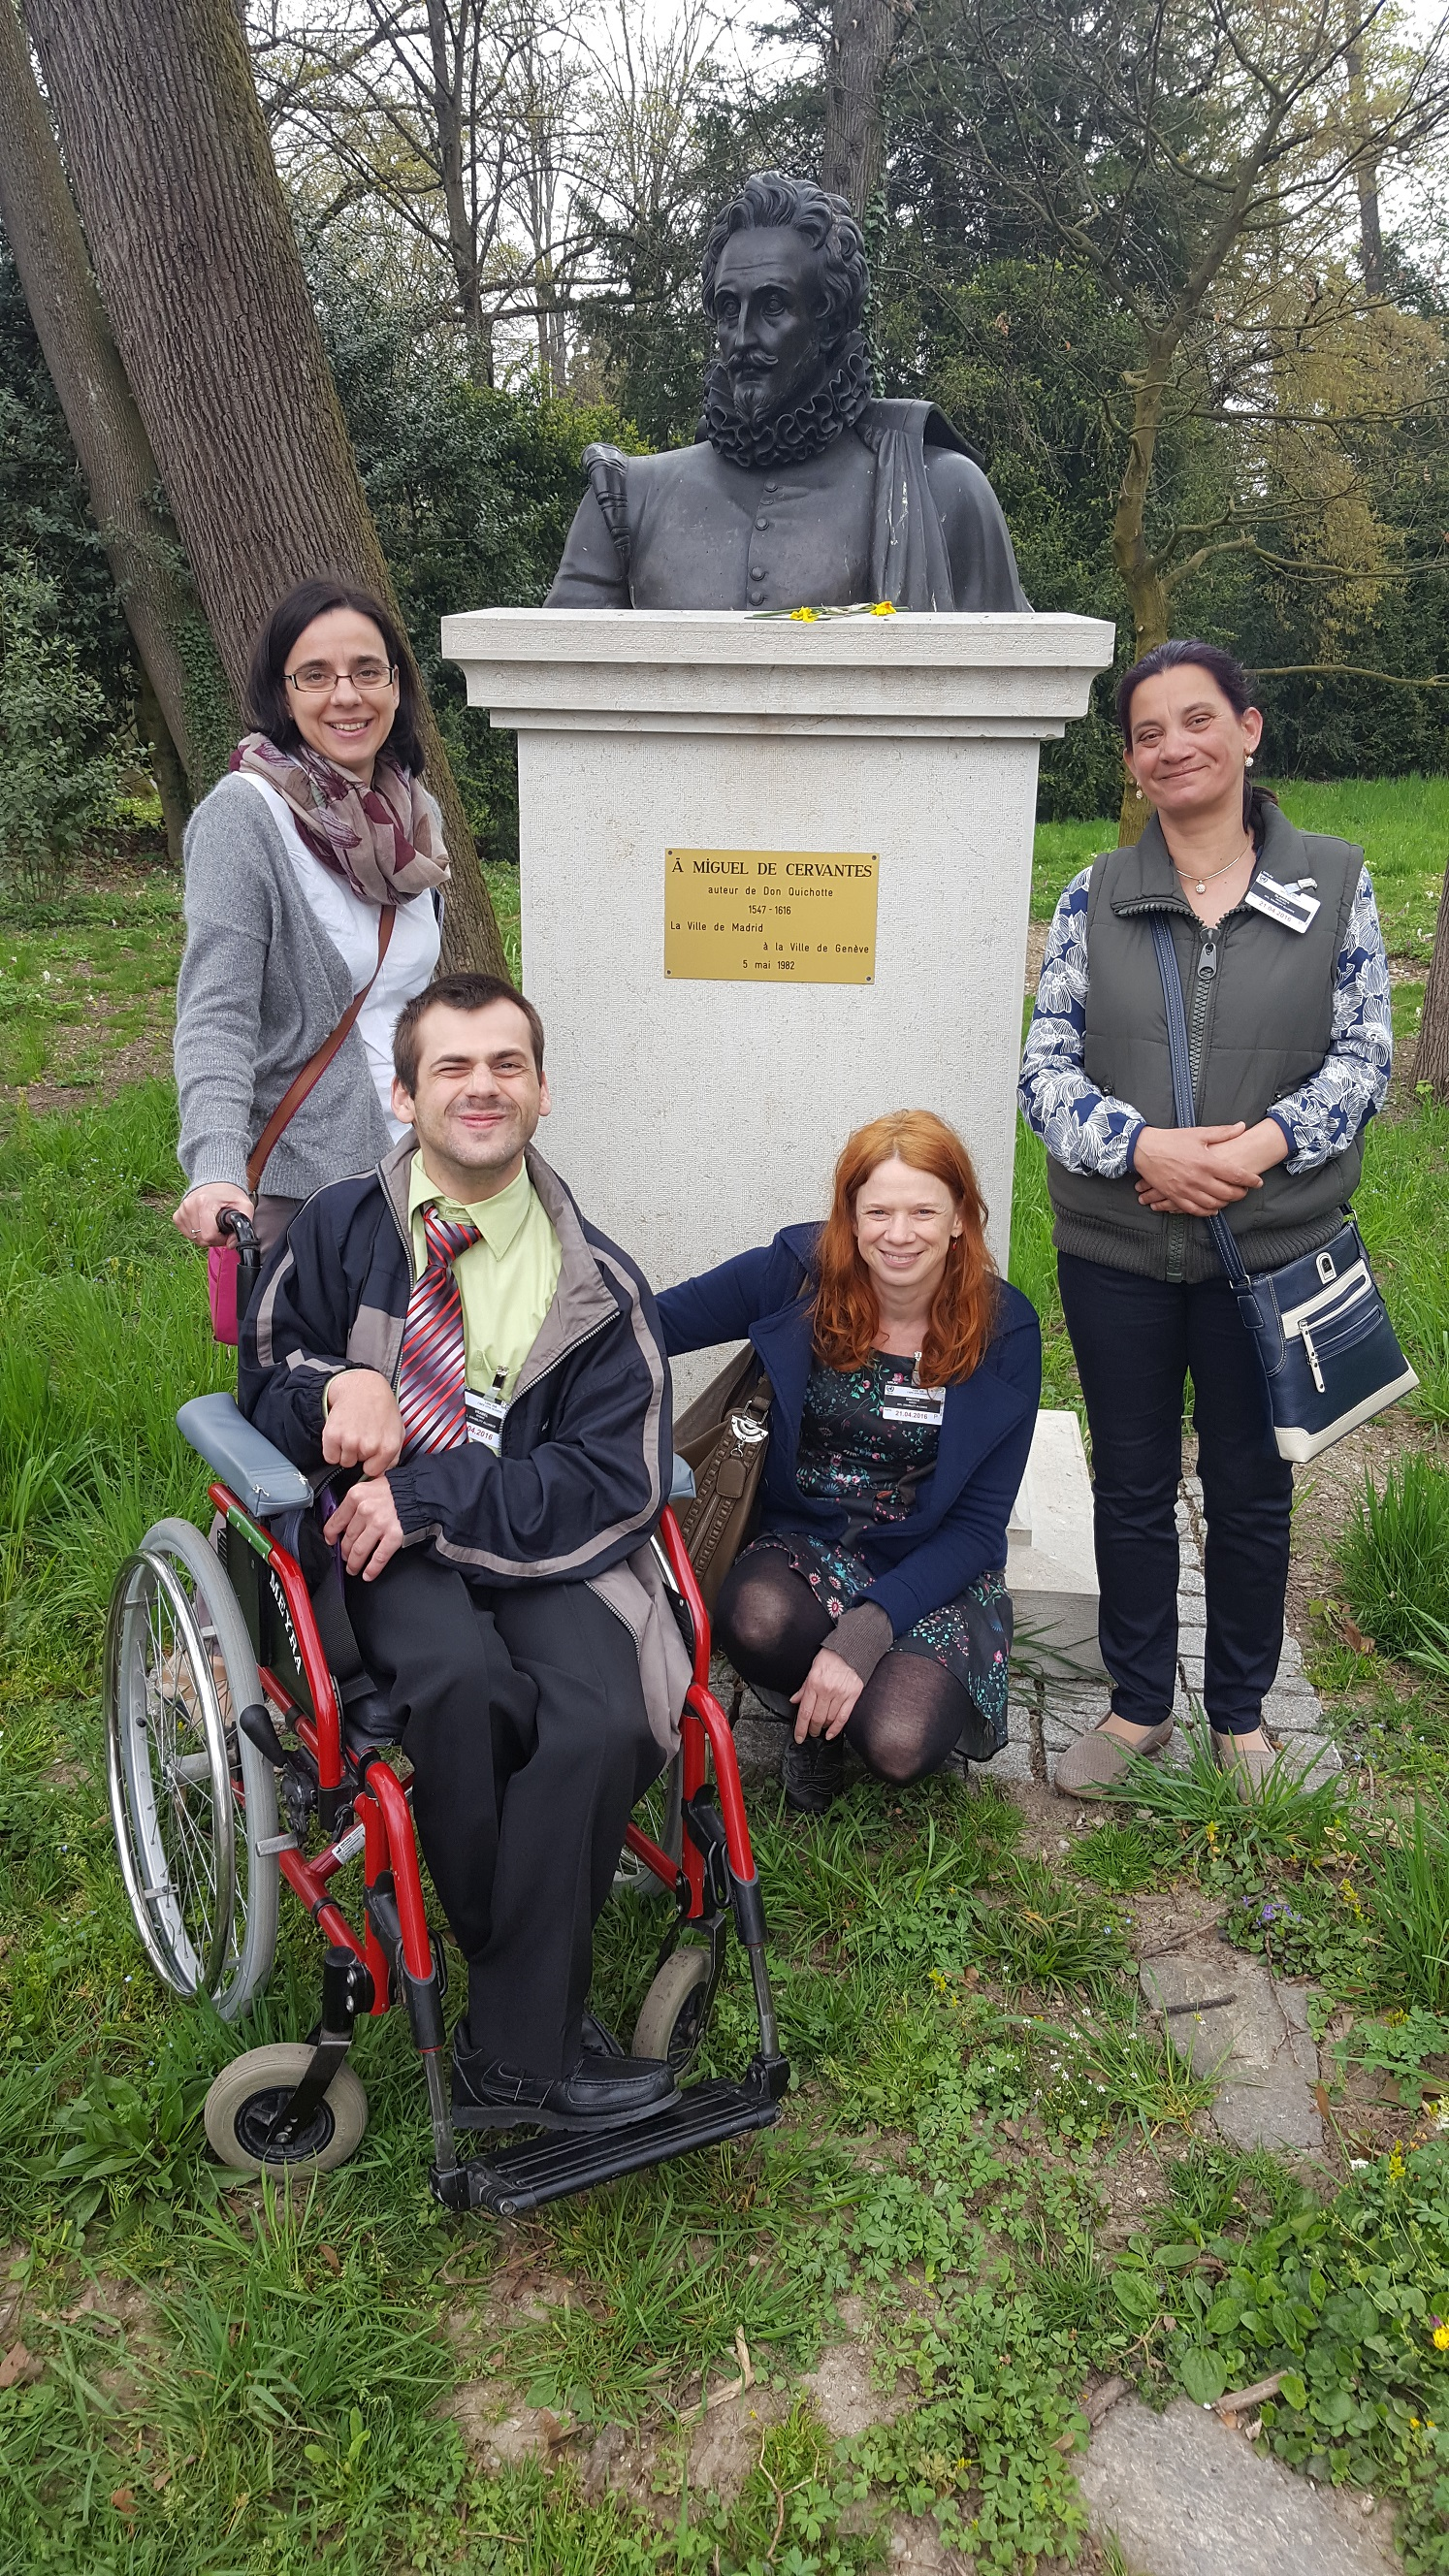 Slovakia's disability rights record was scrutinised by the UN's disability expert committee this week. MDAC and Slovak NGOs sent information to the committee so that it could recommend to the Government to make progress on community-based services and make sure each child with disabilities gets an e…